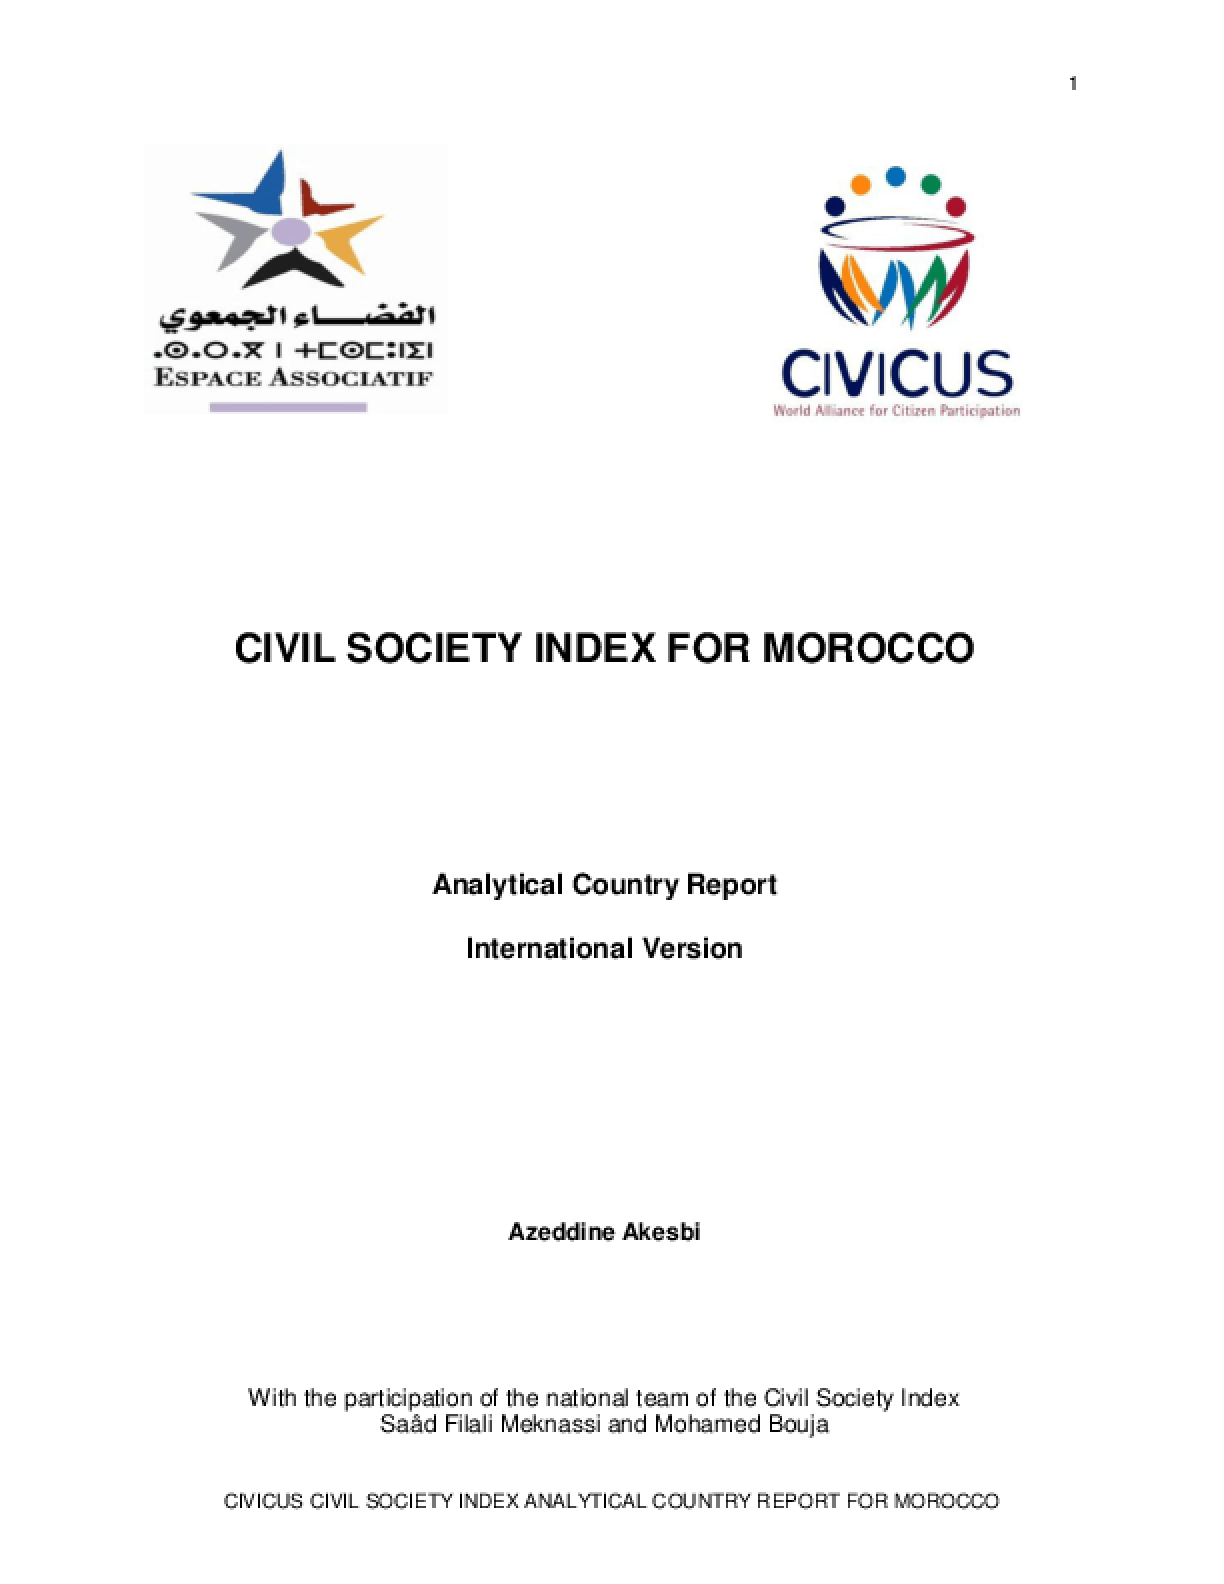 Civil Society Index for Morocco: Analytical Country Report